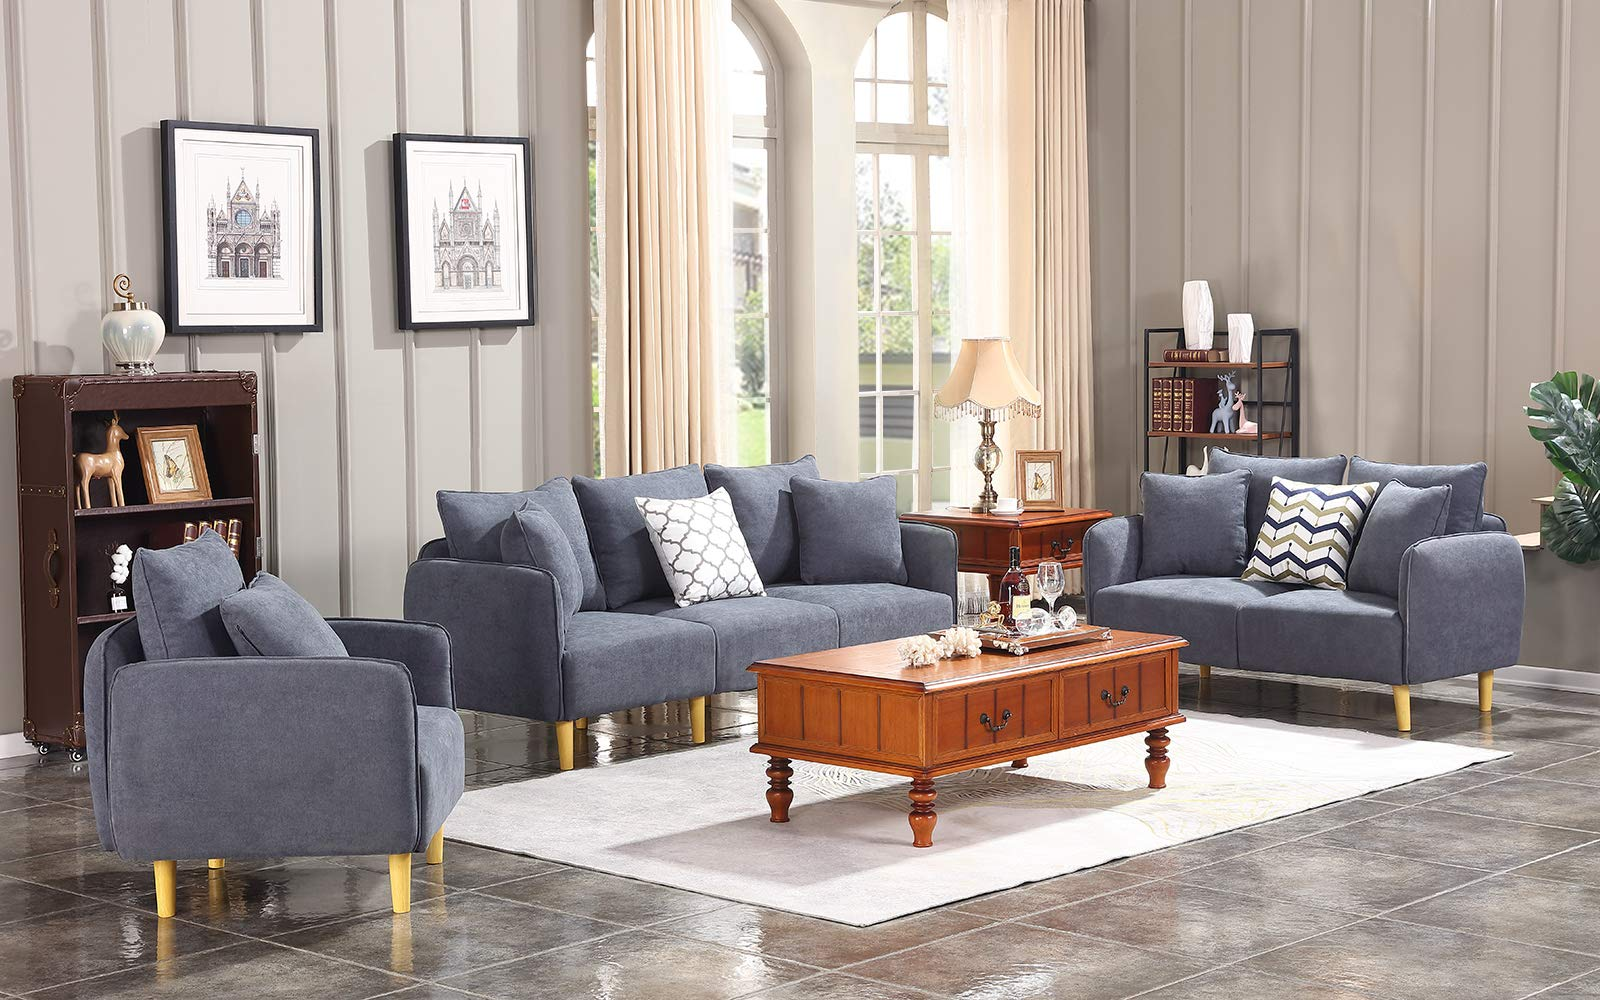 Honbay 3 Piece Chair Loveseat Sofa Sets for Living Room Furniture Sets, Dark Grey by Honbay